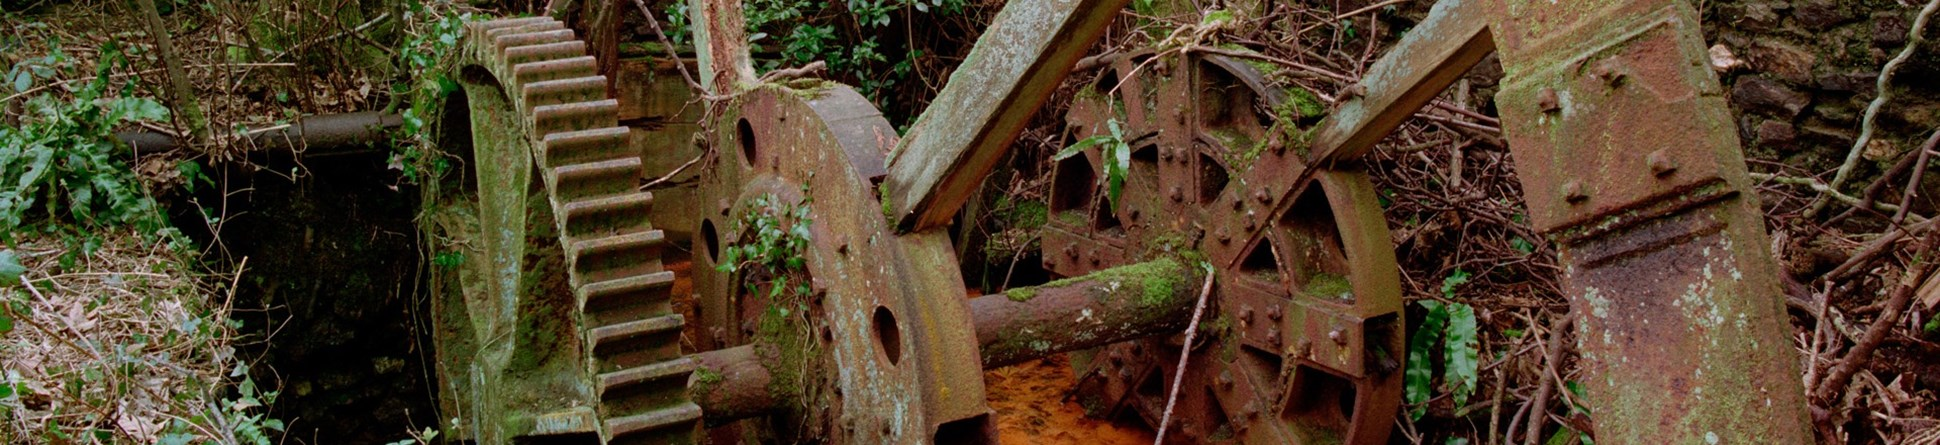 A detail photograph of rusting industrial machinery.